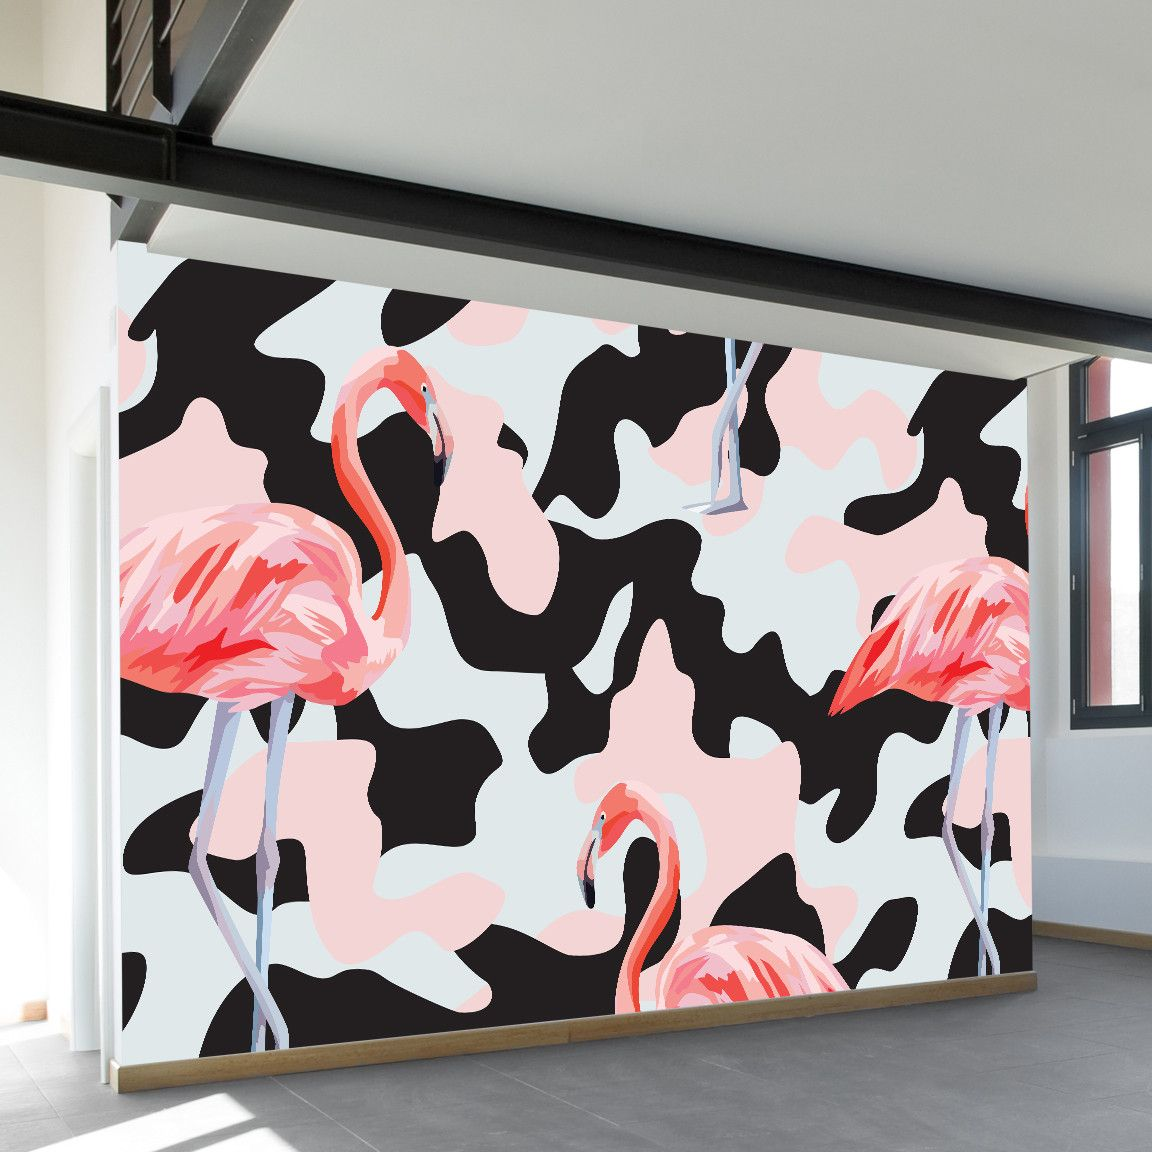 Flamingo camo wall mural wall murals flamingo and walls flamingo camo wall mural amipublicfo Choice Image